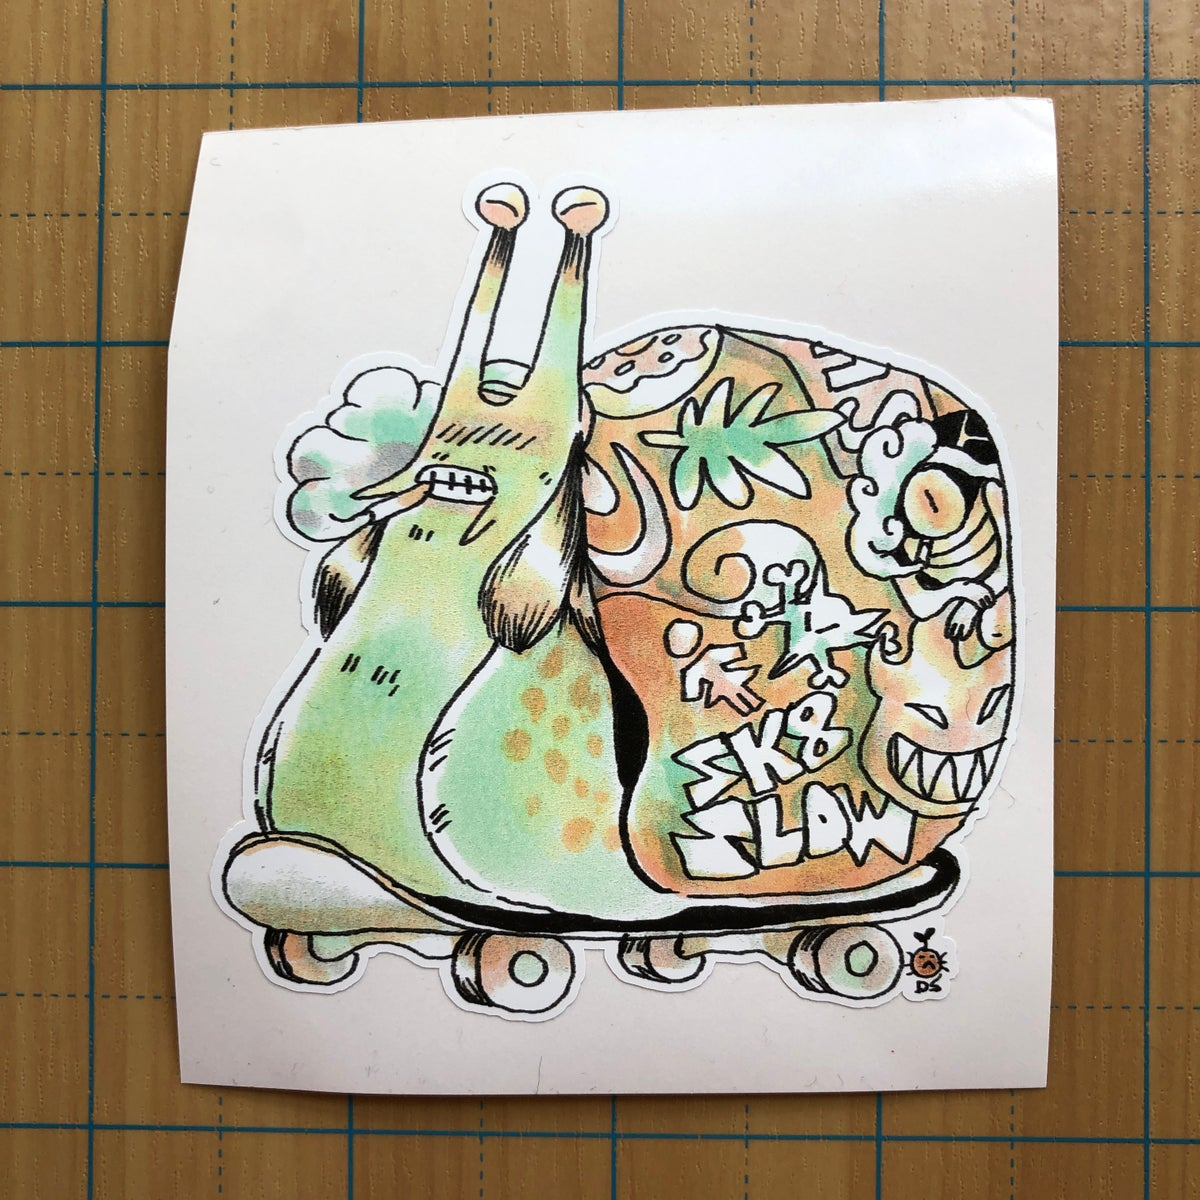 Image of Skater Snail sticker